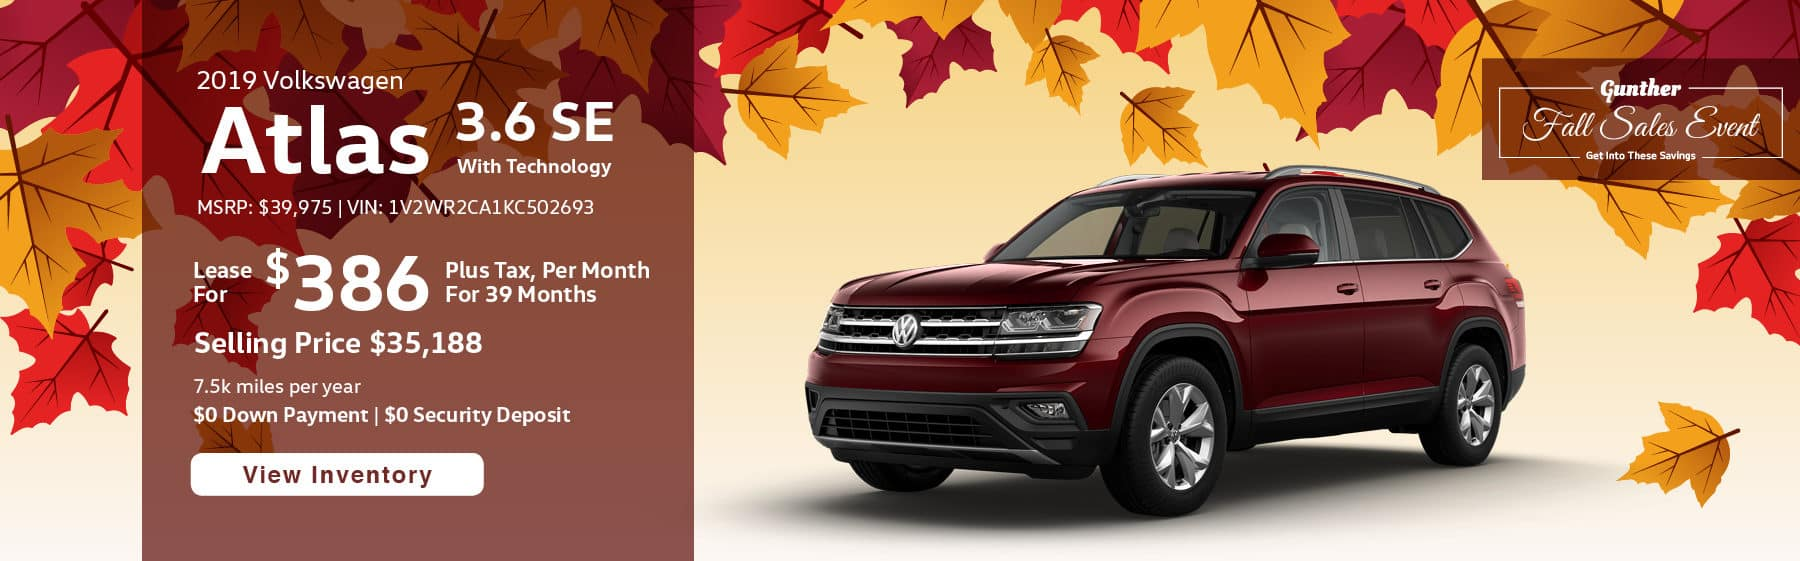 Lease the 2019 Atlas 3.6 SE With Technology for $386 per month, plus tax for 39 months.